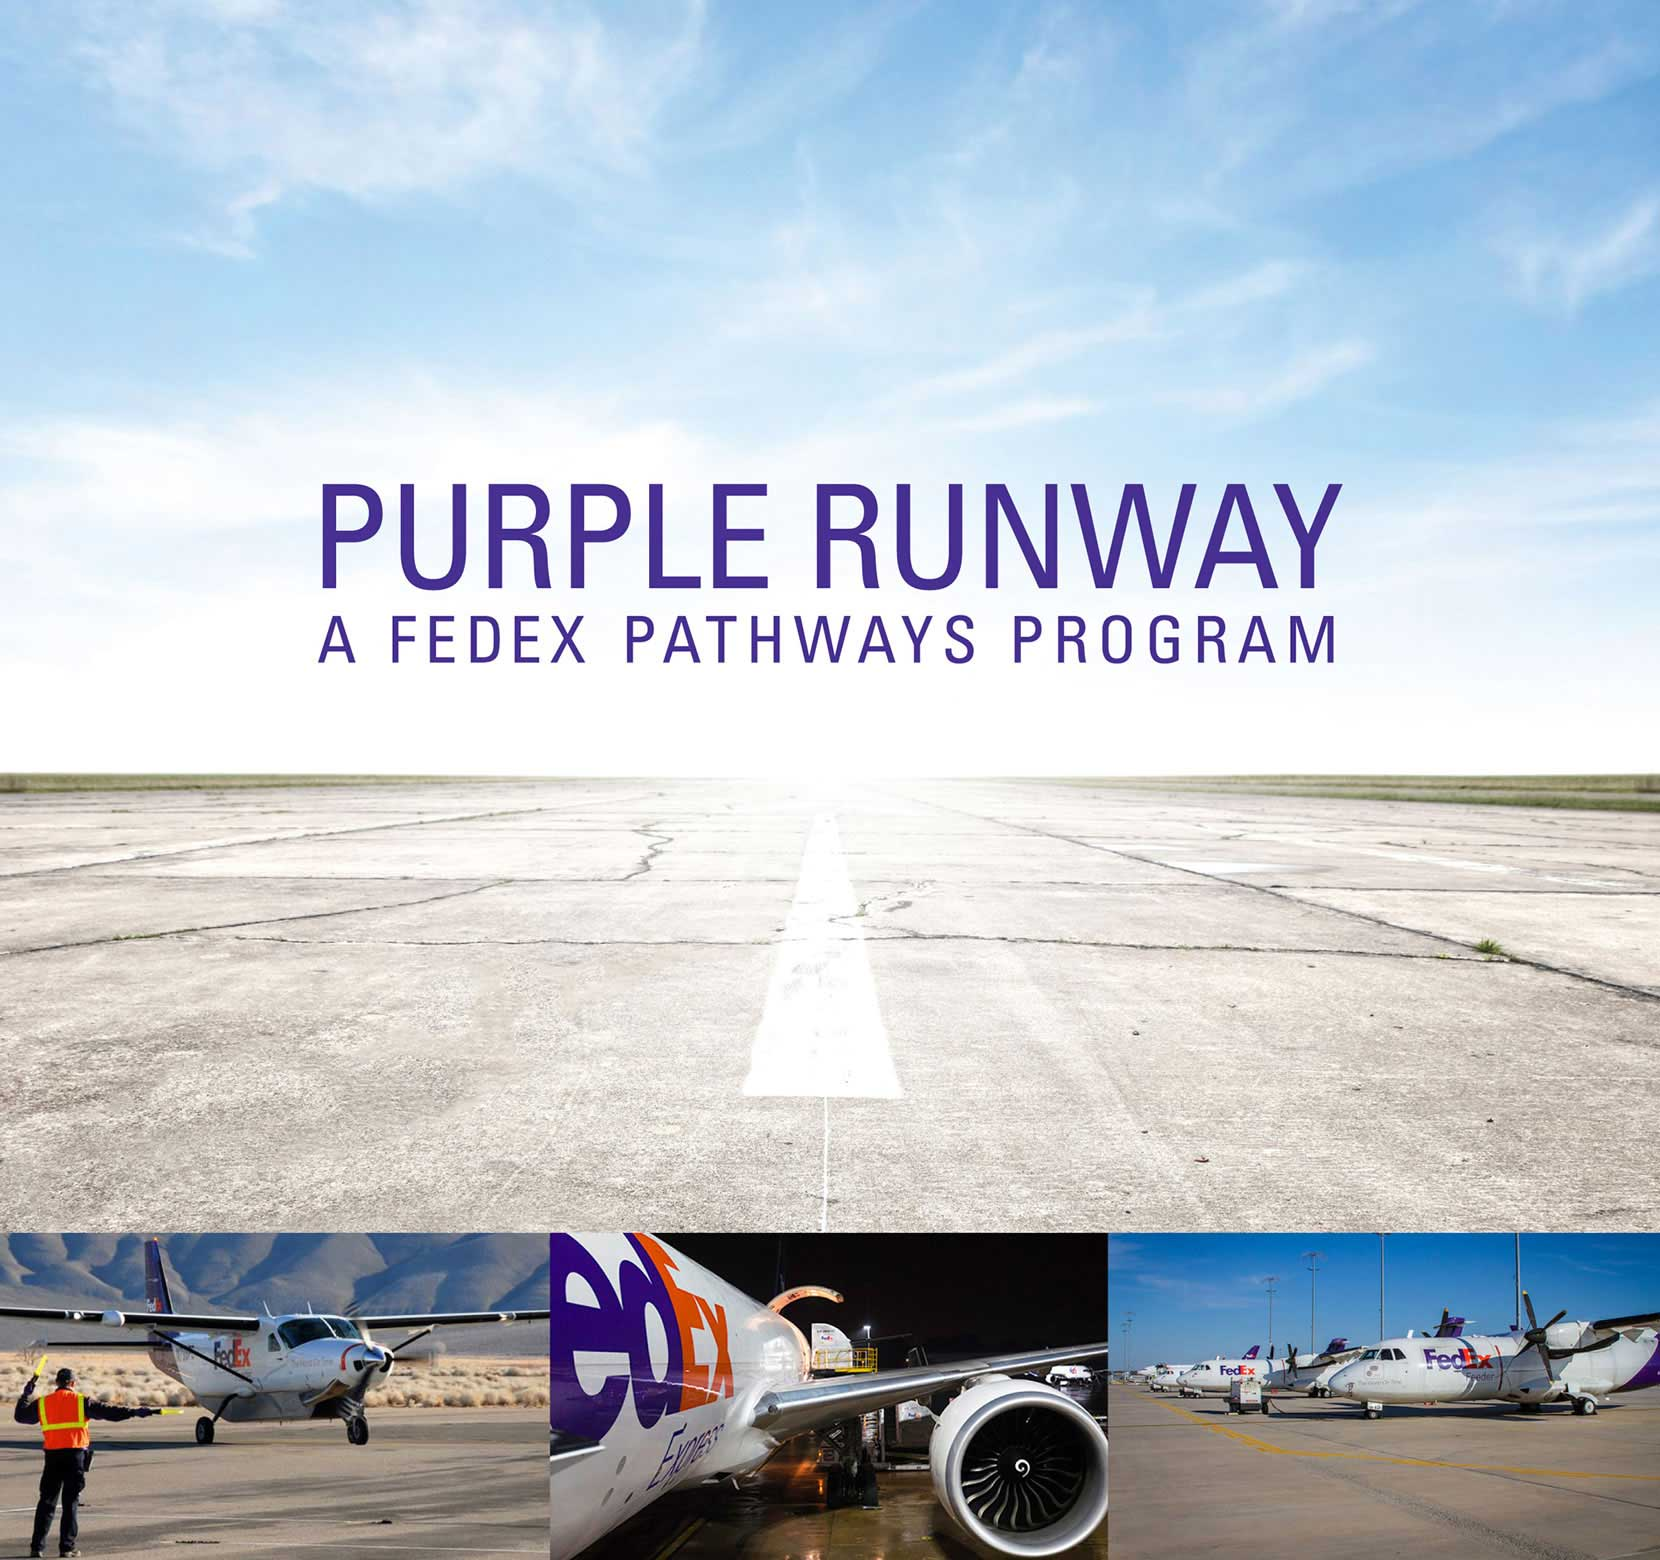 FedEx Purple Runway pilot training